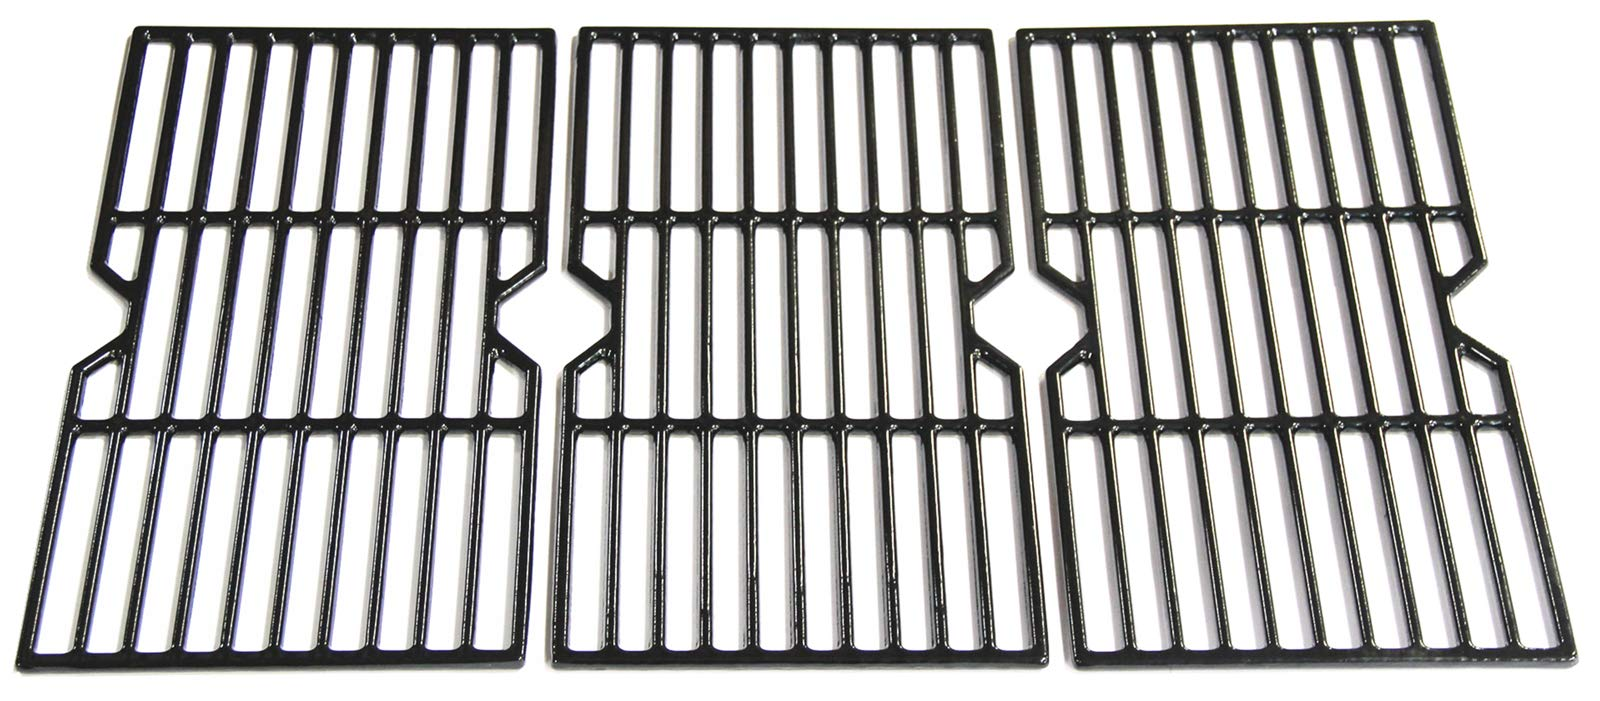 VICOOL HyG876C Porceleain Coated Cast Iron Cooking Grid Replacement for Select Gas Grill Models by Charbroil, Kenmore and Others, Set of 3